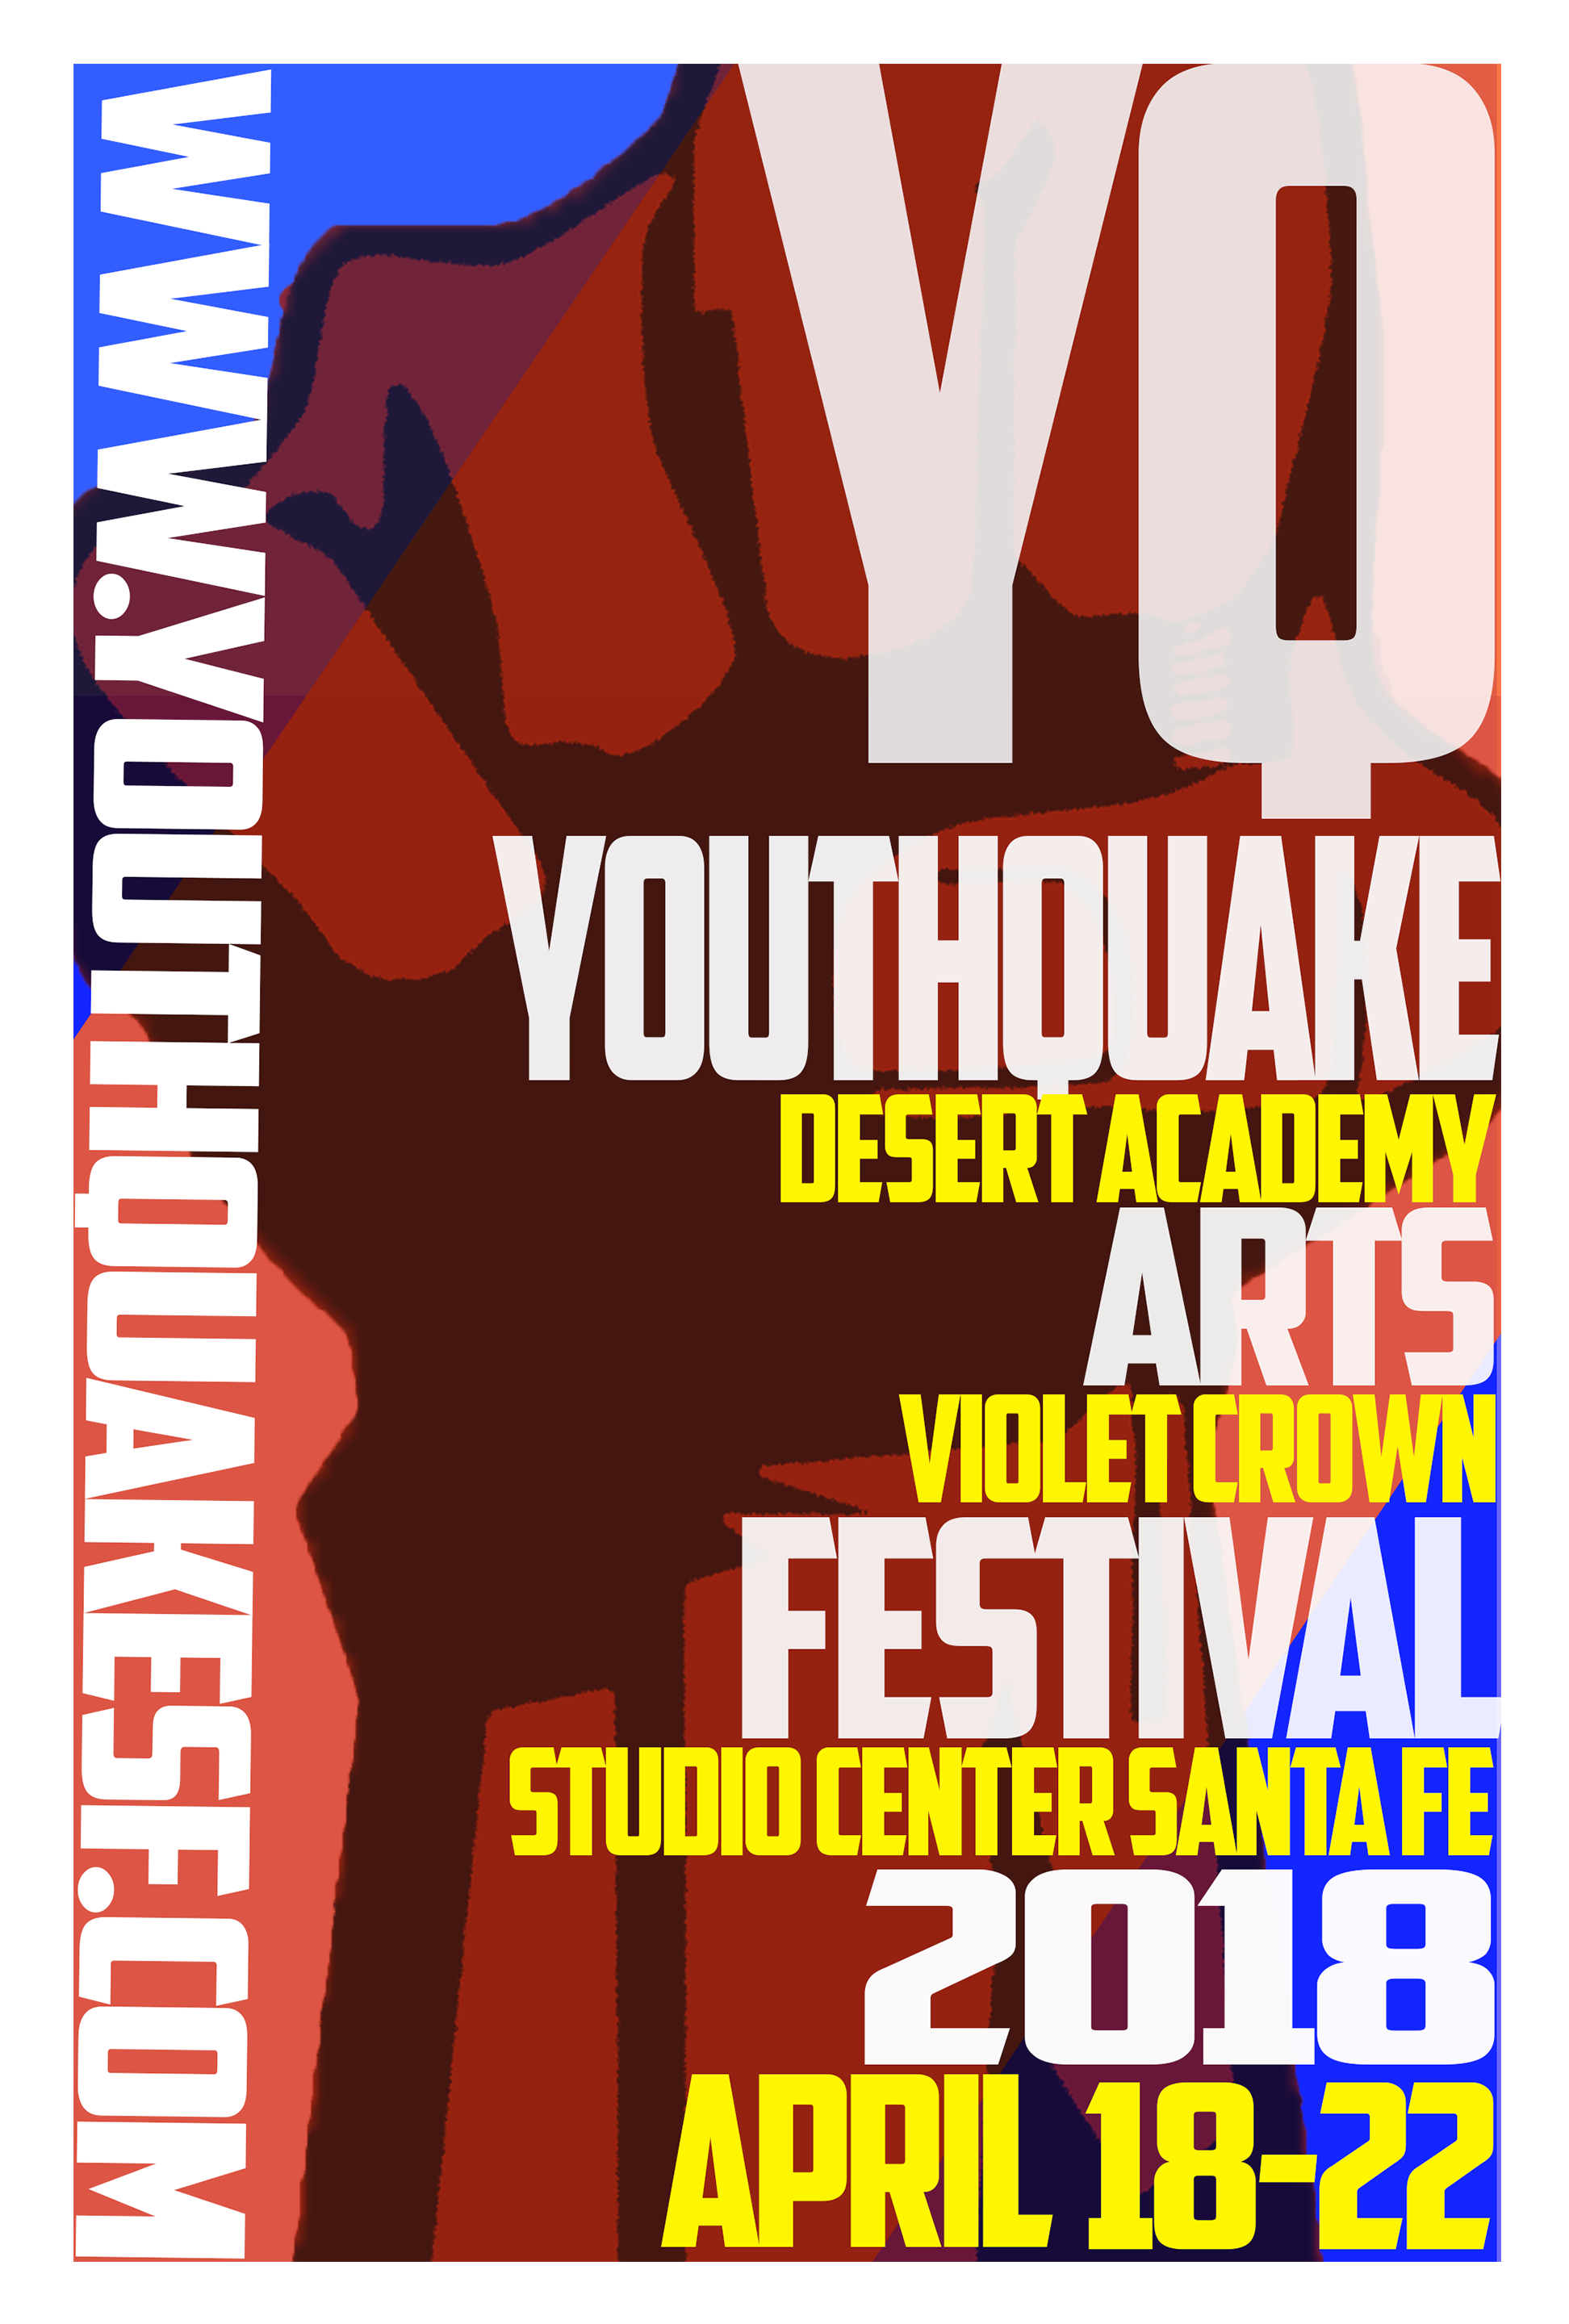 Youthquake - A student organized four day arts event of film, art, theater, and music.